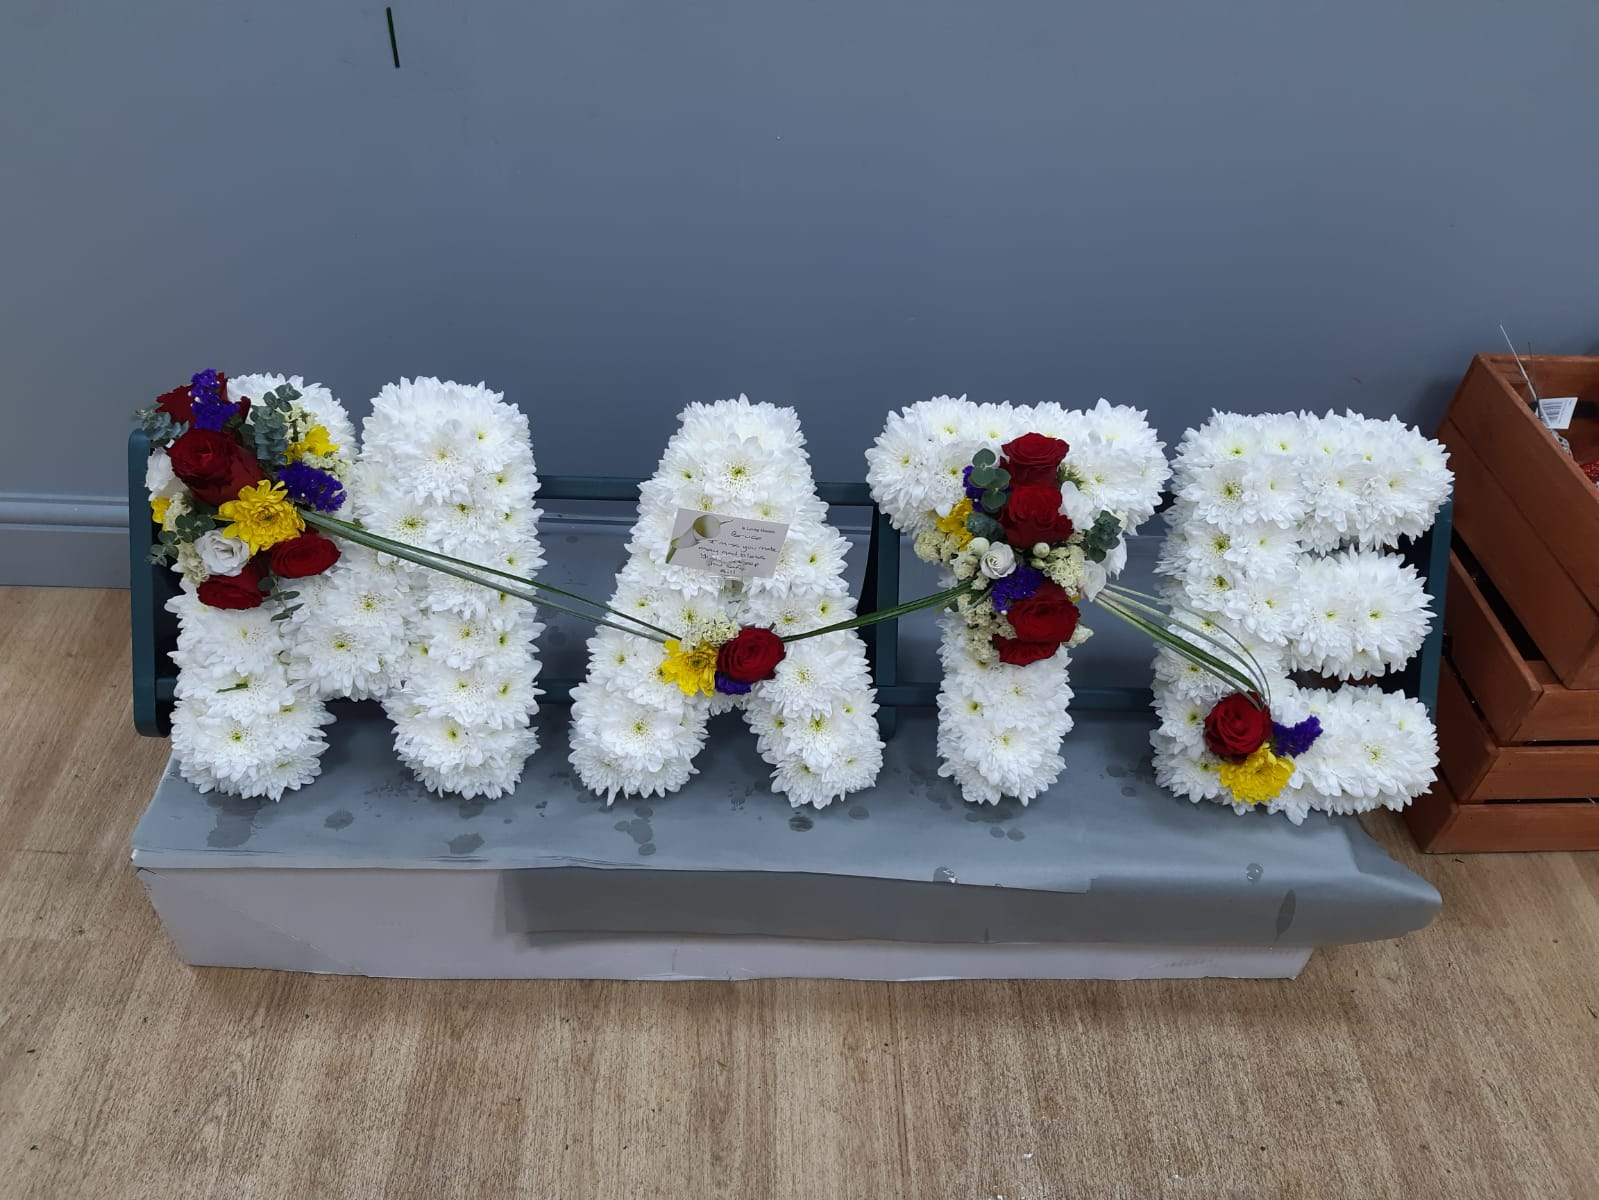 Funeral letters soray roses statice eustoma chrysant